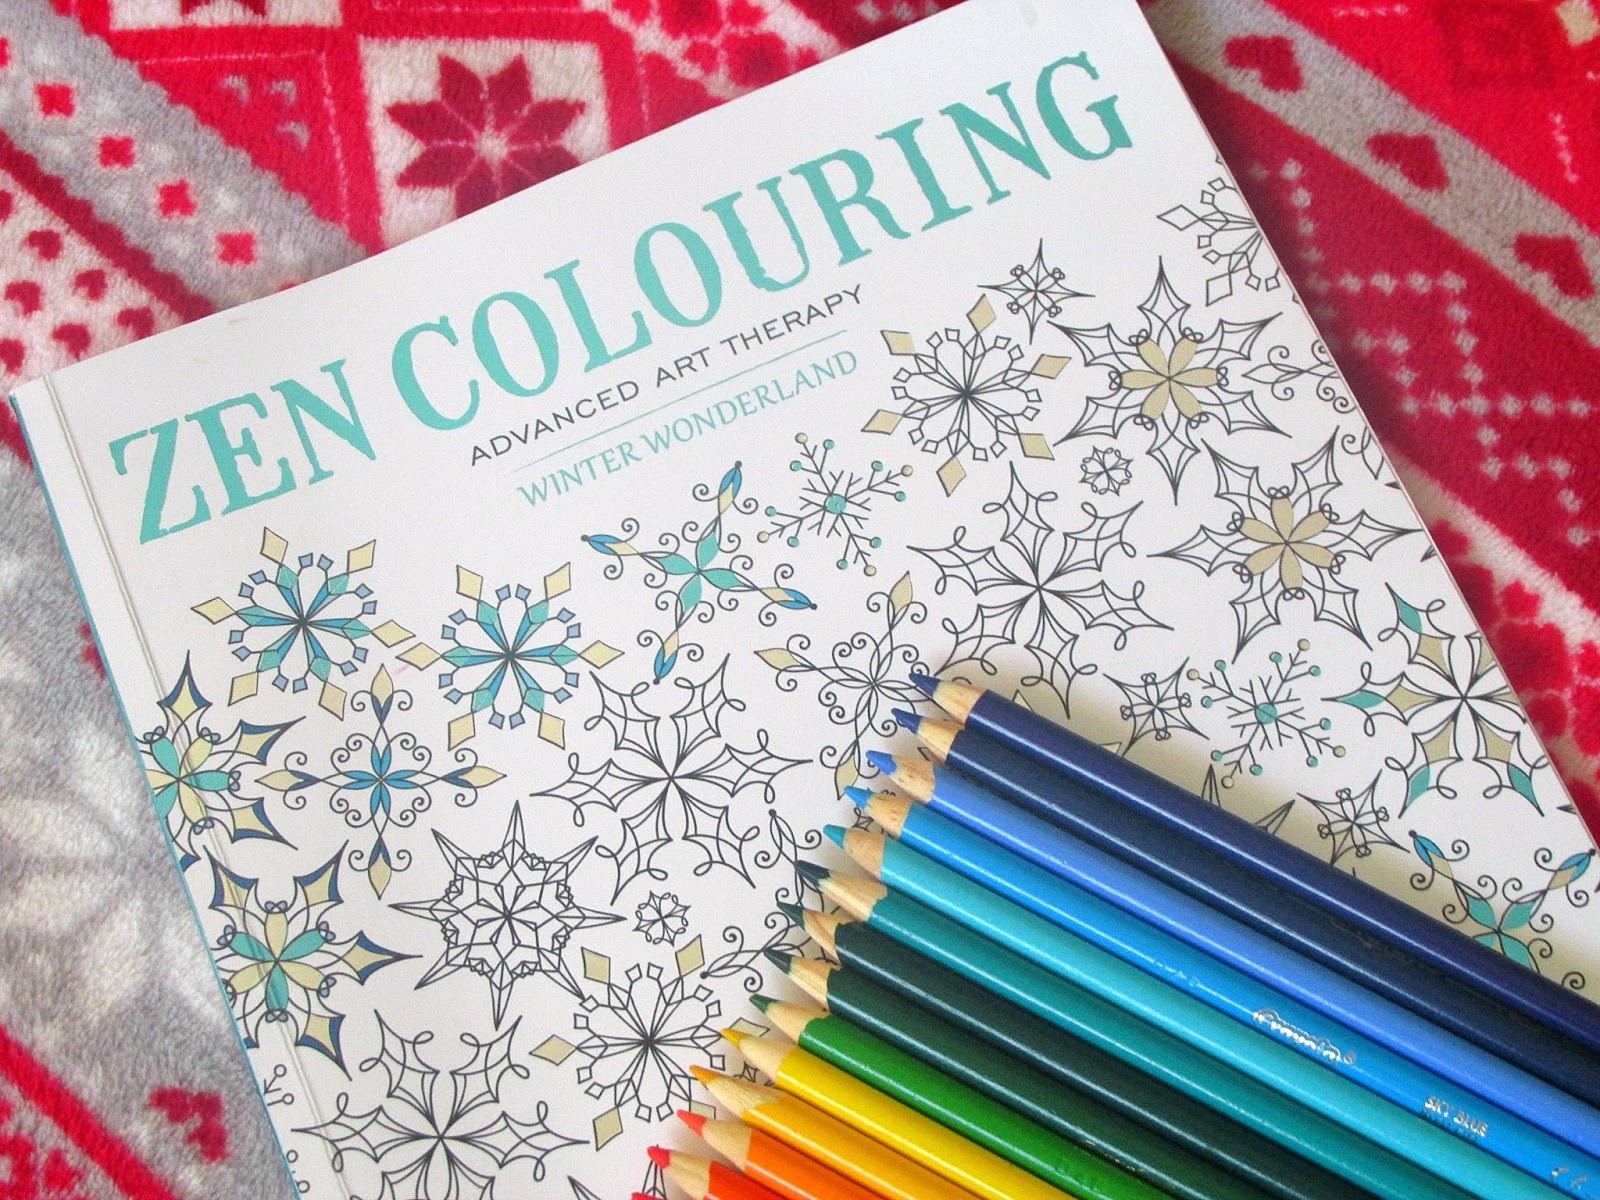 Colour zen review -  I Had To Get Myself A Piece Of That Action And Bought Myself A Copy Of The Zen Colouring Winter Wonderland Colouring Book A Few Months Ago